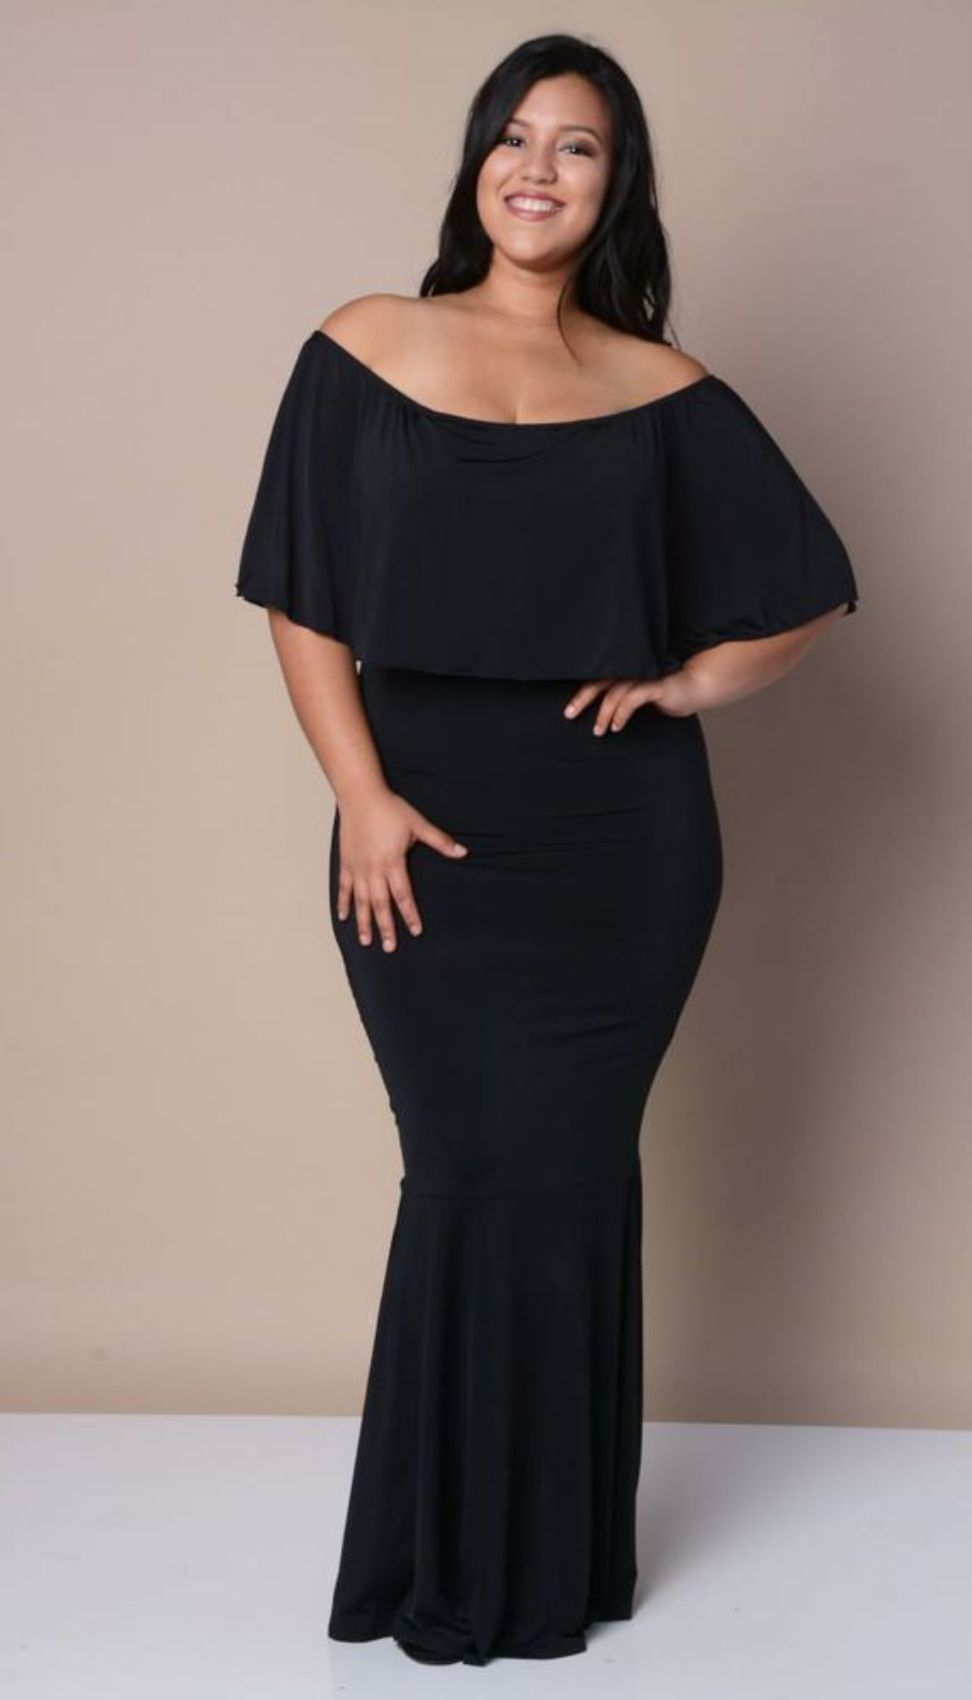 Off the Shoulder with Mermaid Skirt Gown Plus Size